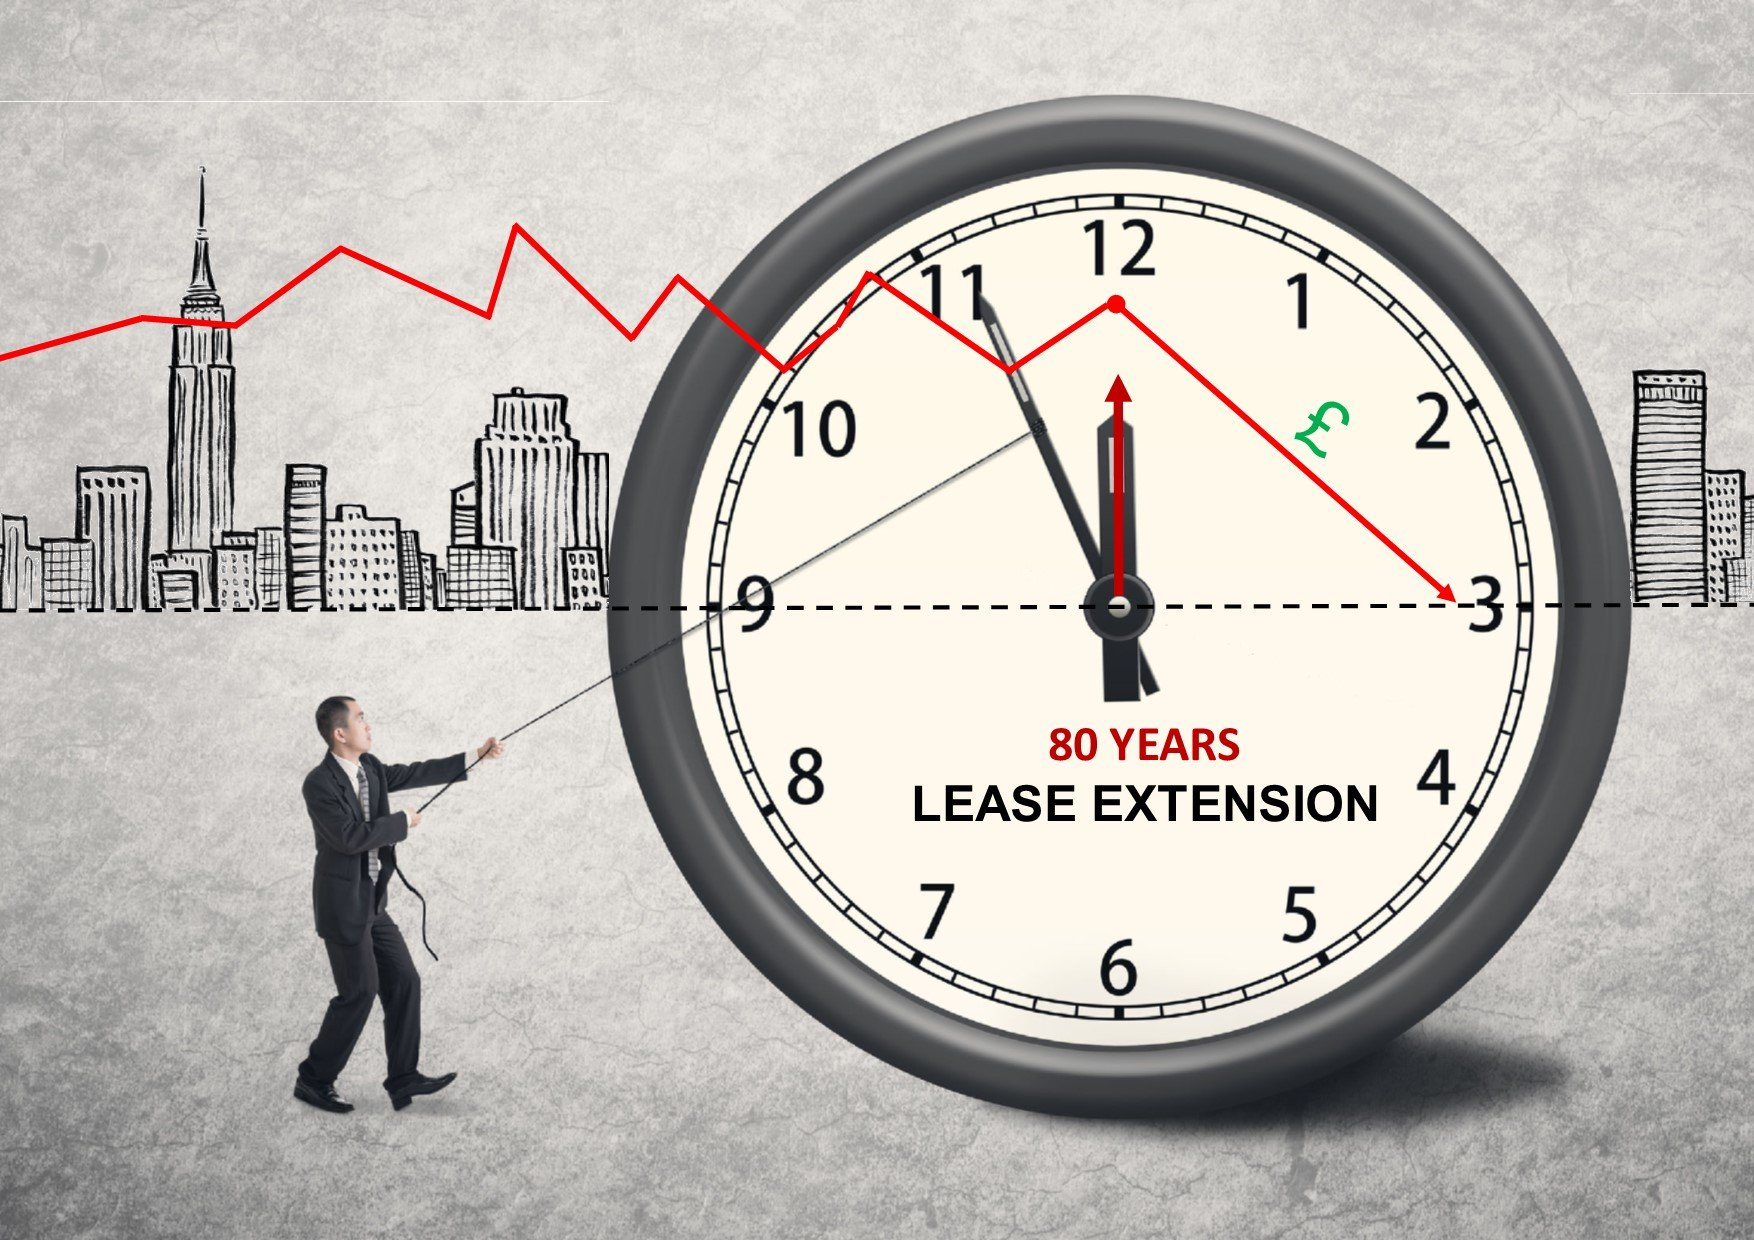 Lease Extension, 80 years on lease